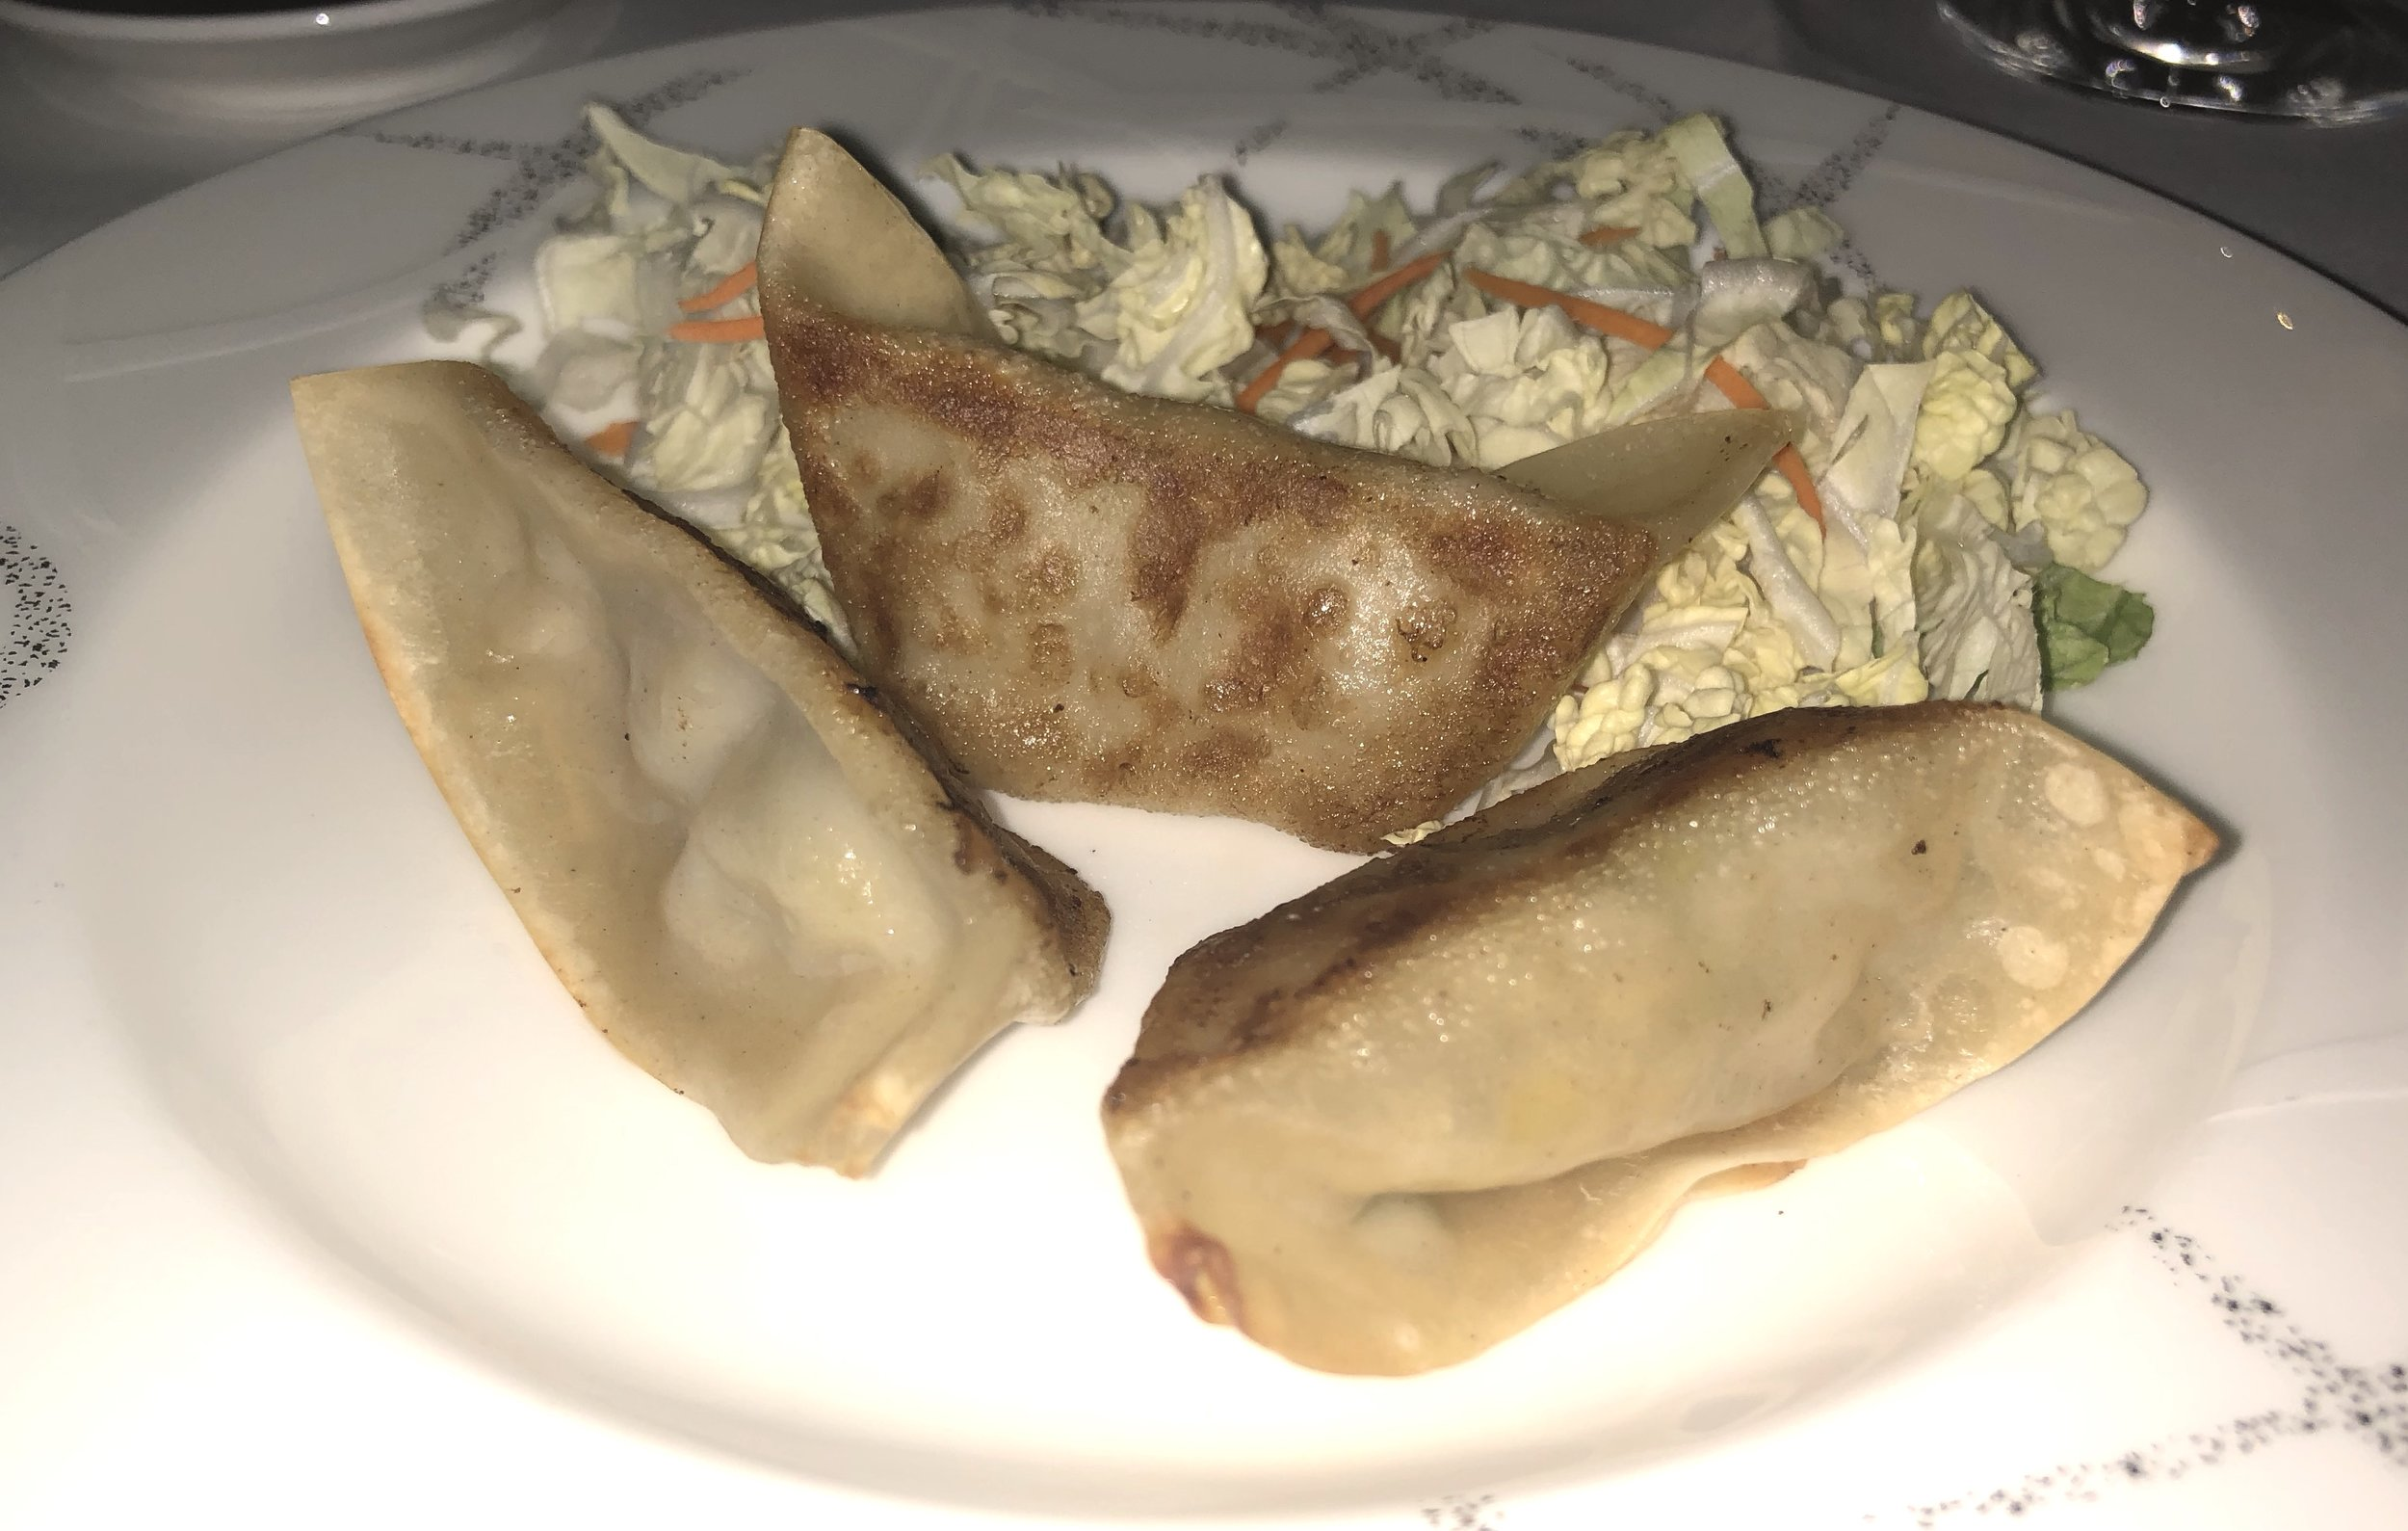 Snack: Pork dumplings- my photo didn't give justice to how good it tasted. Believe me it was really good